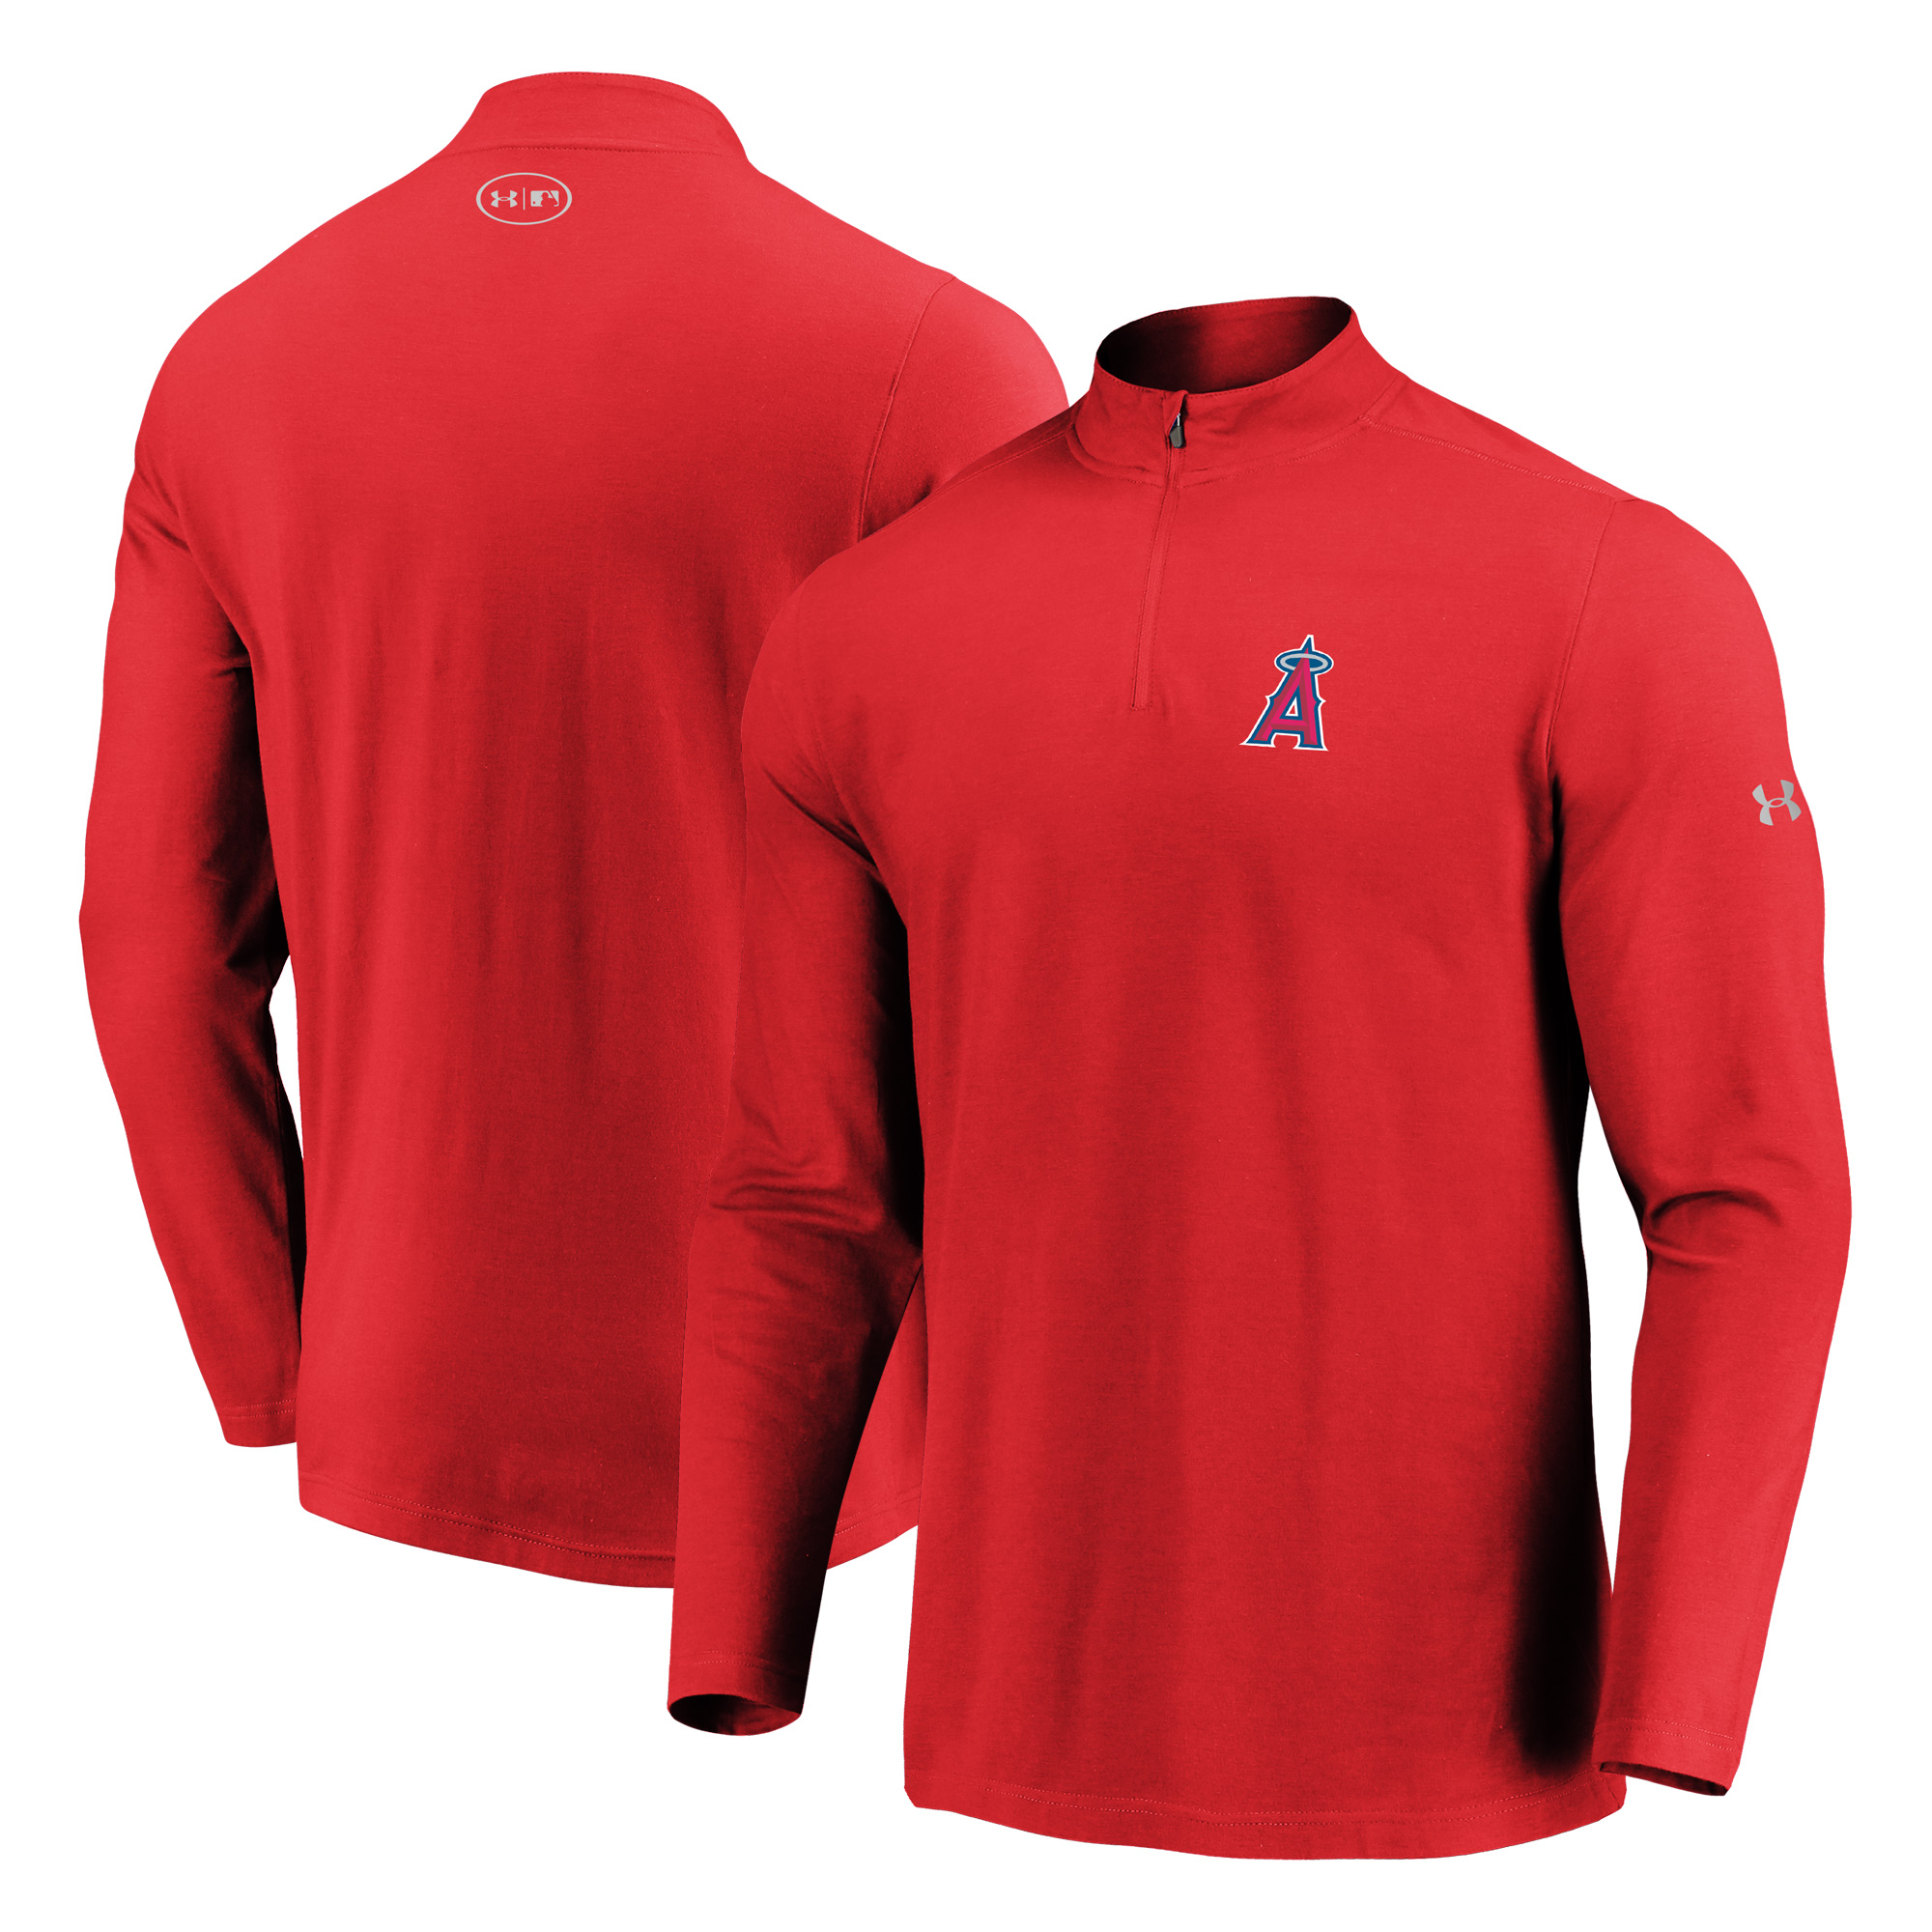 Los Angeles Angels Under Armour Passion Performance Tri-Blend Quarter-Zip Pullover Jacket - Red